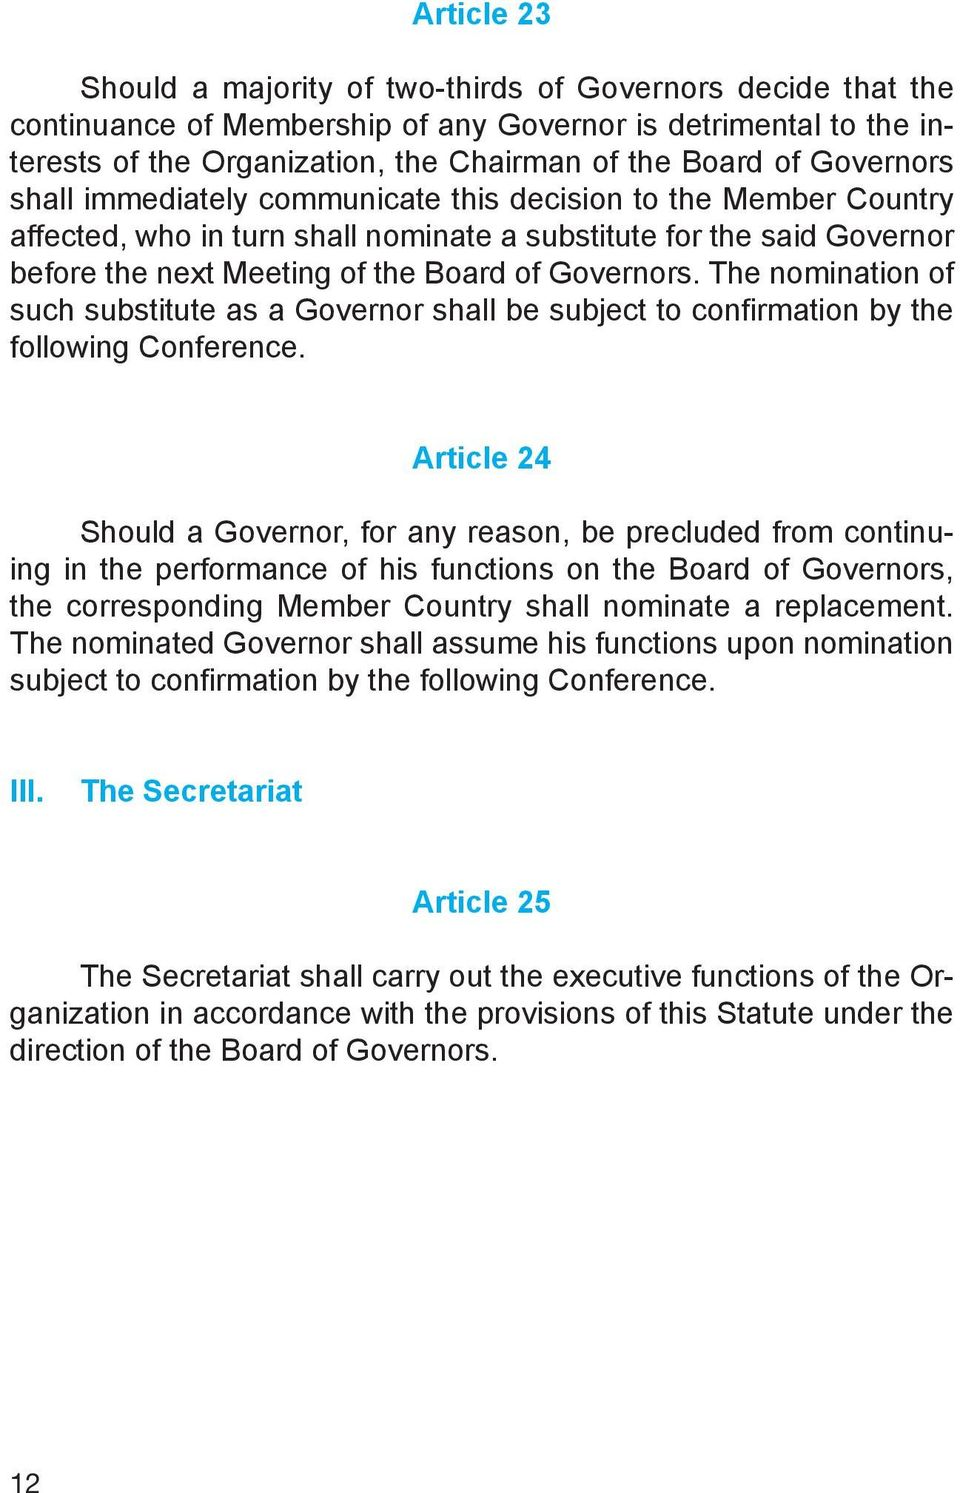 The nomination of such substitute as a Governor shall be subject to confirmation by the following Conference.